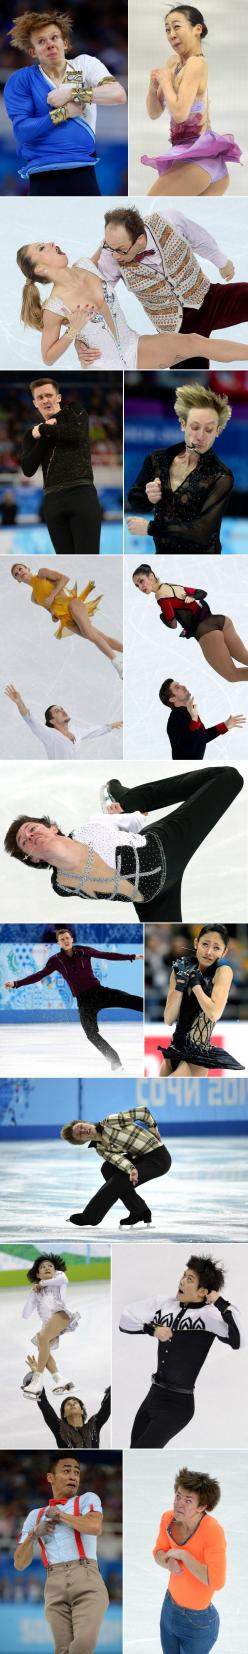 Hilarious faces of Olympic figure skaters-thanks @Kaylie MacDonald McAllister: Skating Faces, Hilarious Faces, Figure Skating, Funny Sports Pictures, Funny Stuff, Funny Faces, Can'T Stop Laughing